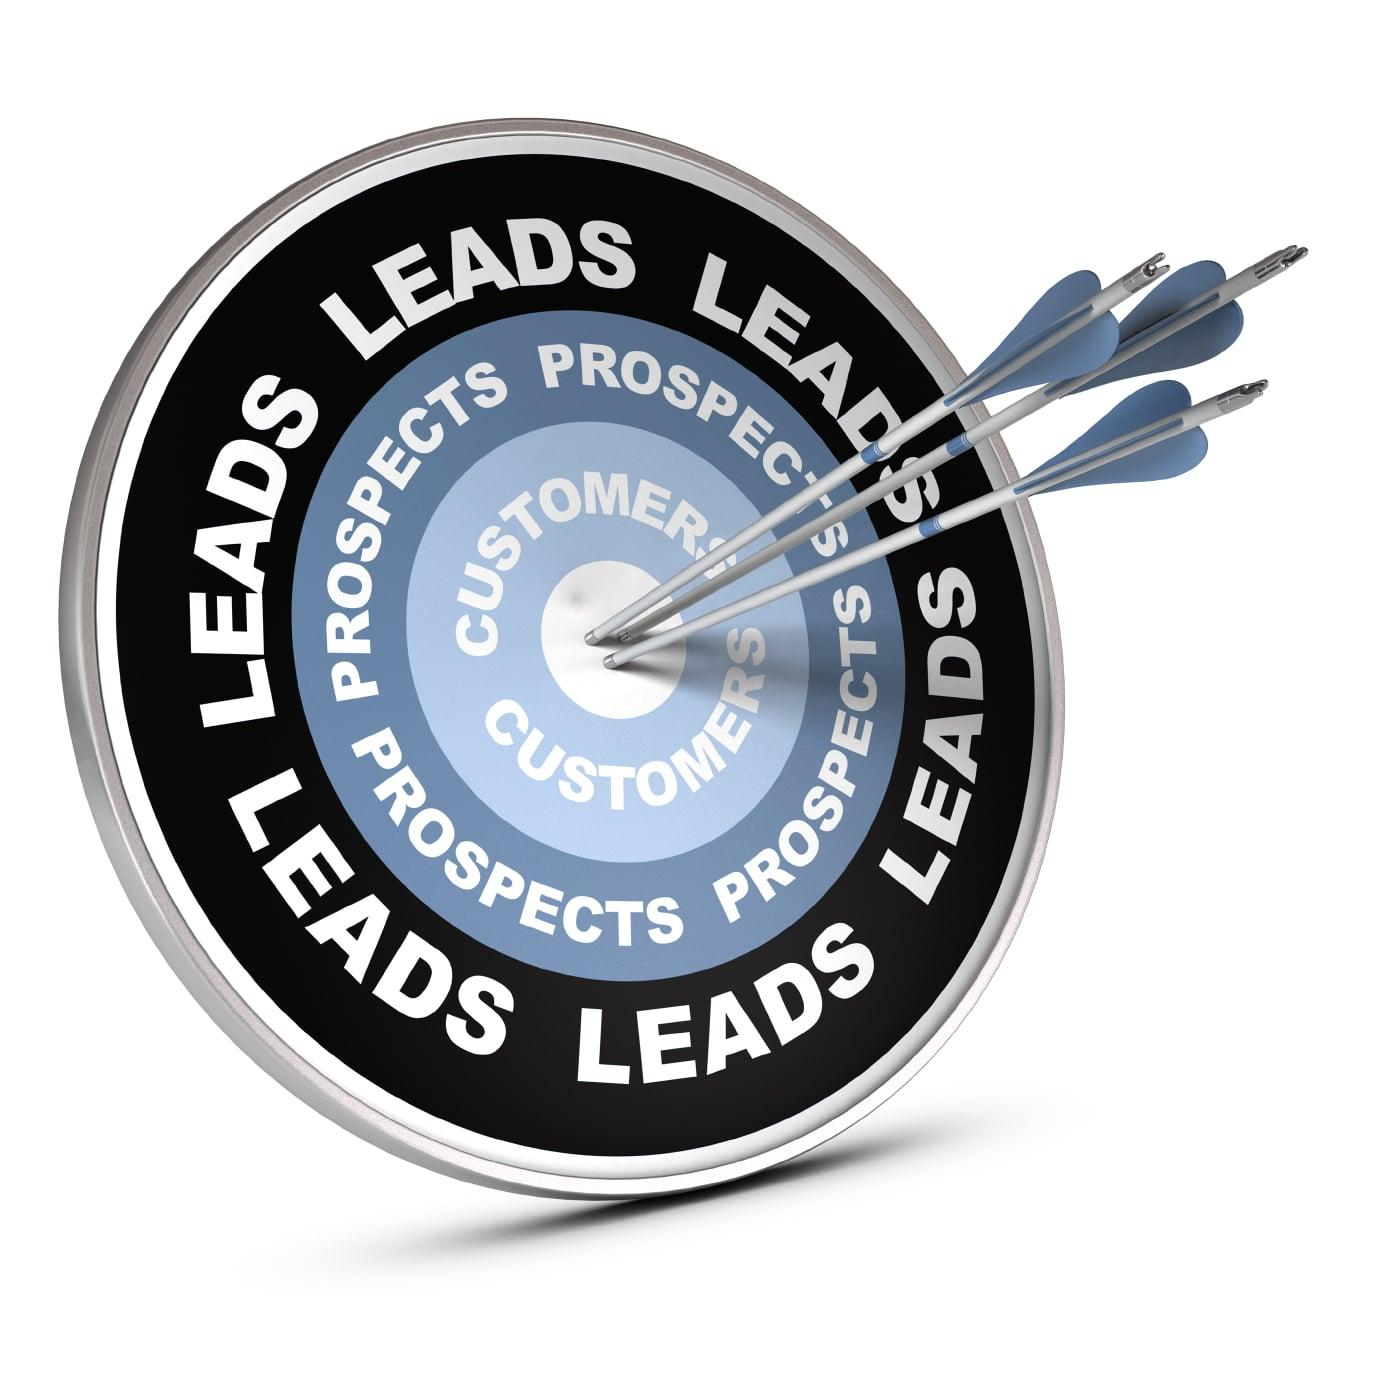 Financial advisors investors become financial advisor leads when they